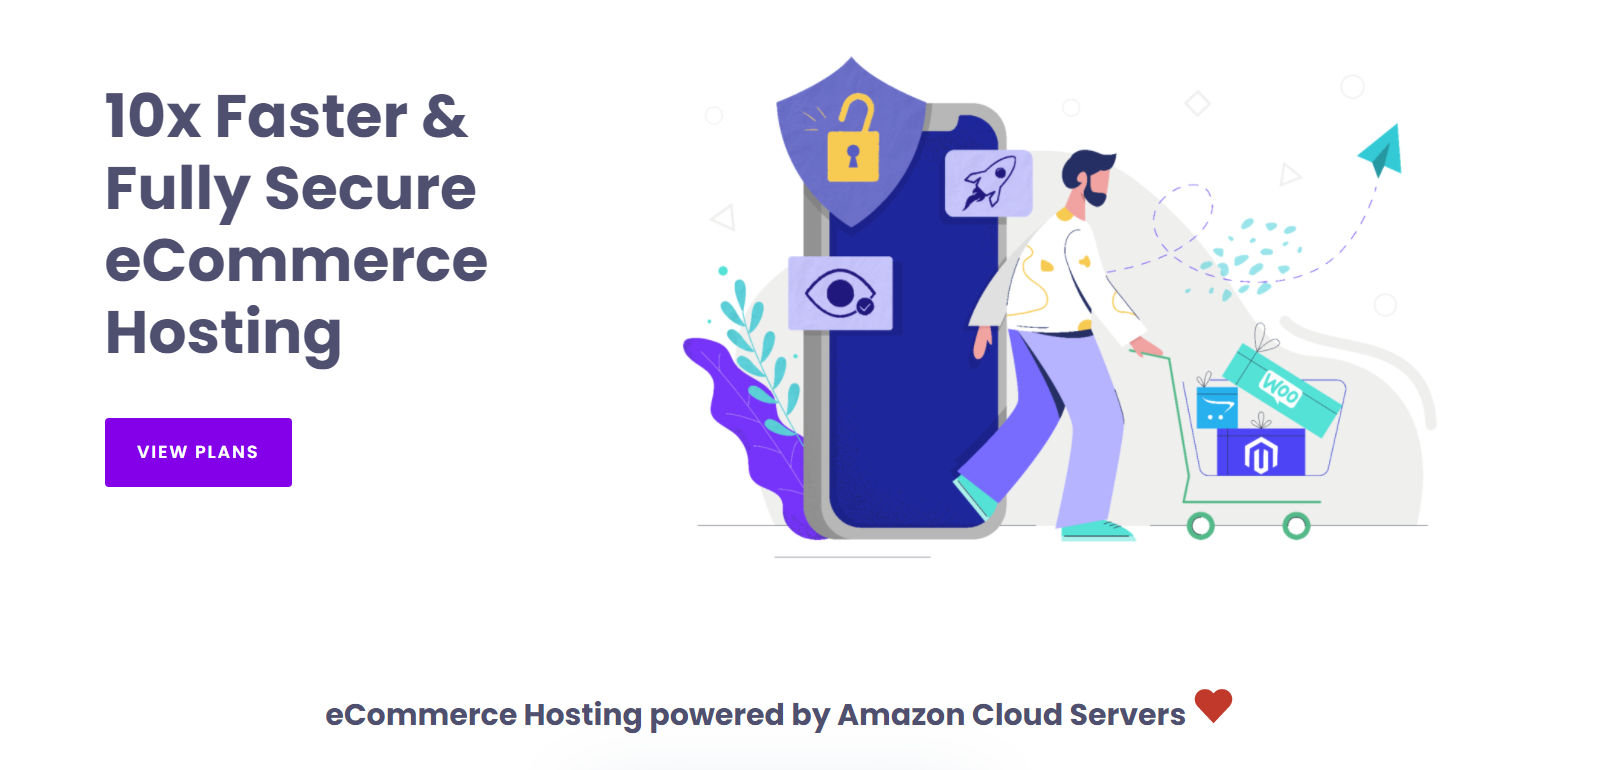 What are the best hosting providers?